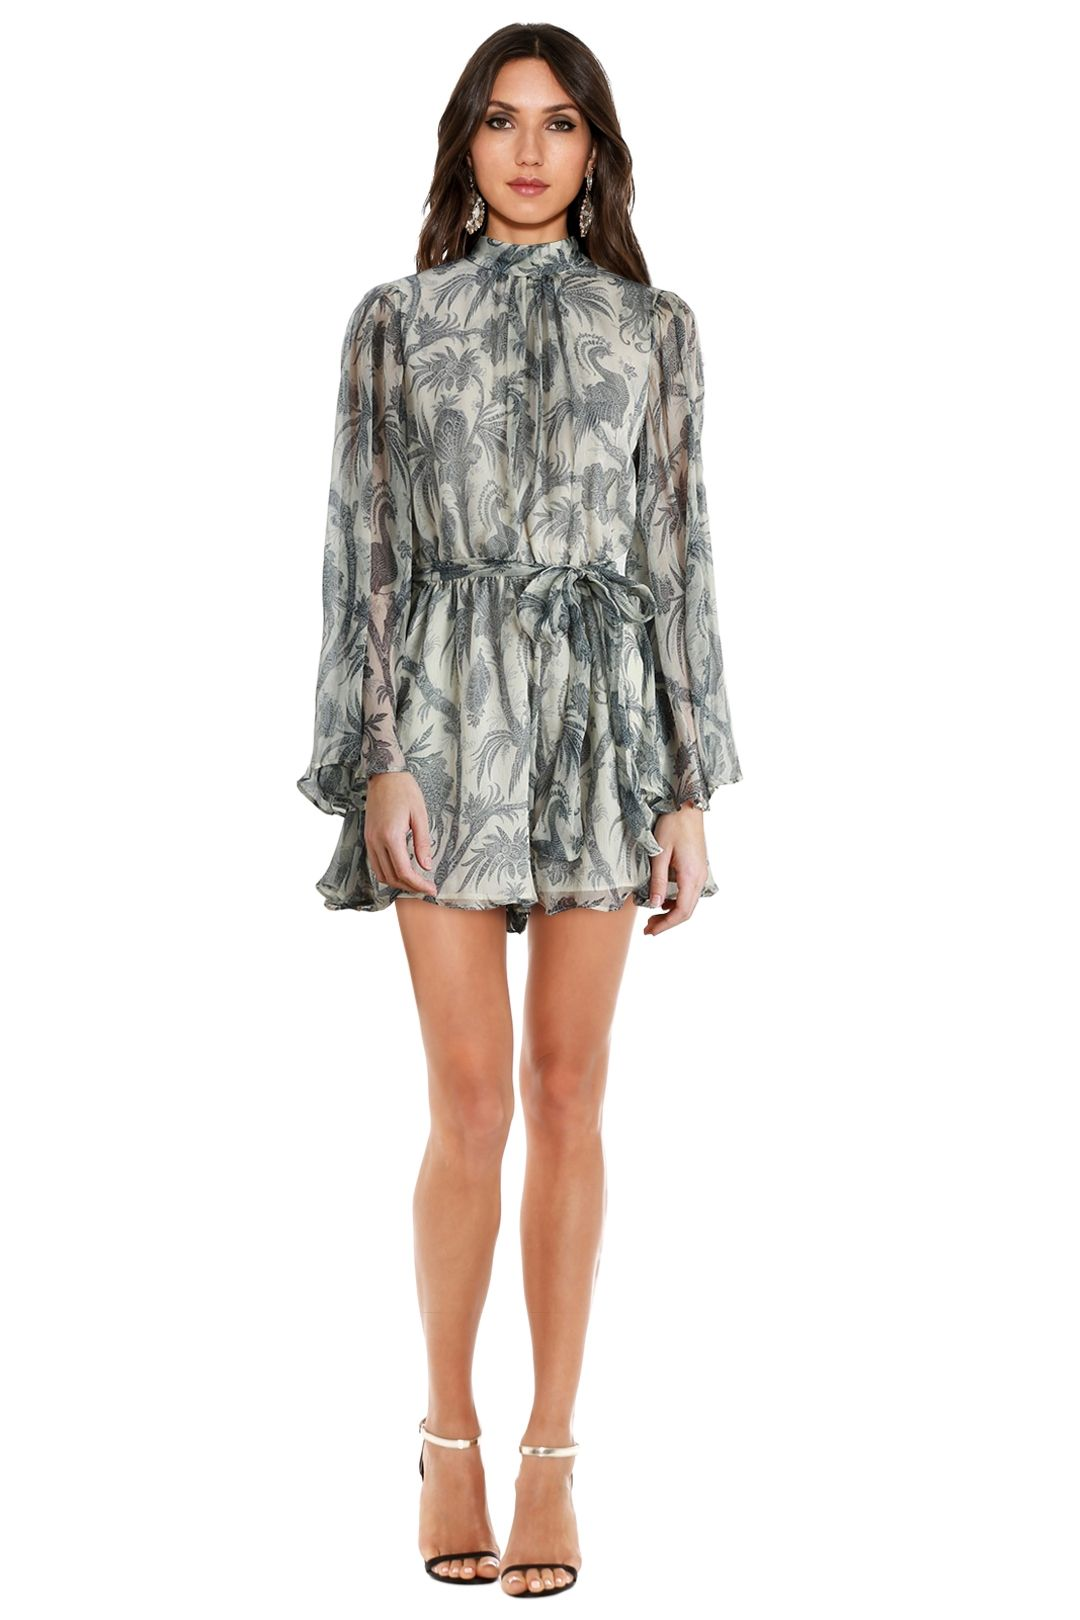 Zimmermann - Adorn Flare Sleeve Playsuit - Blue Bird - Front